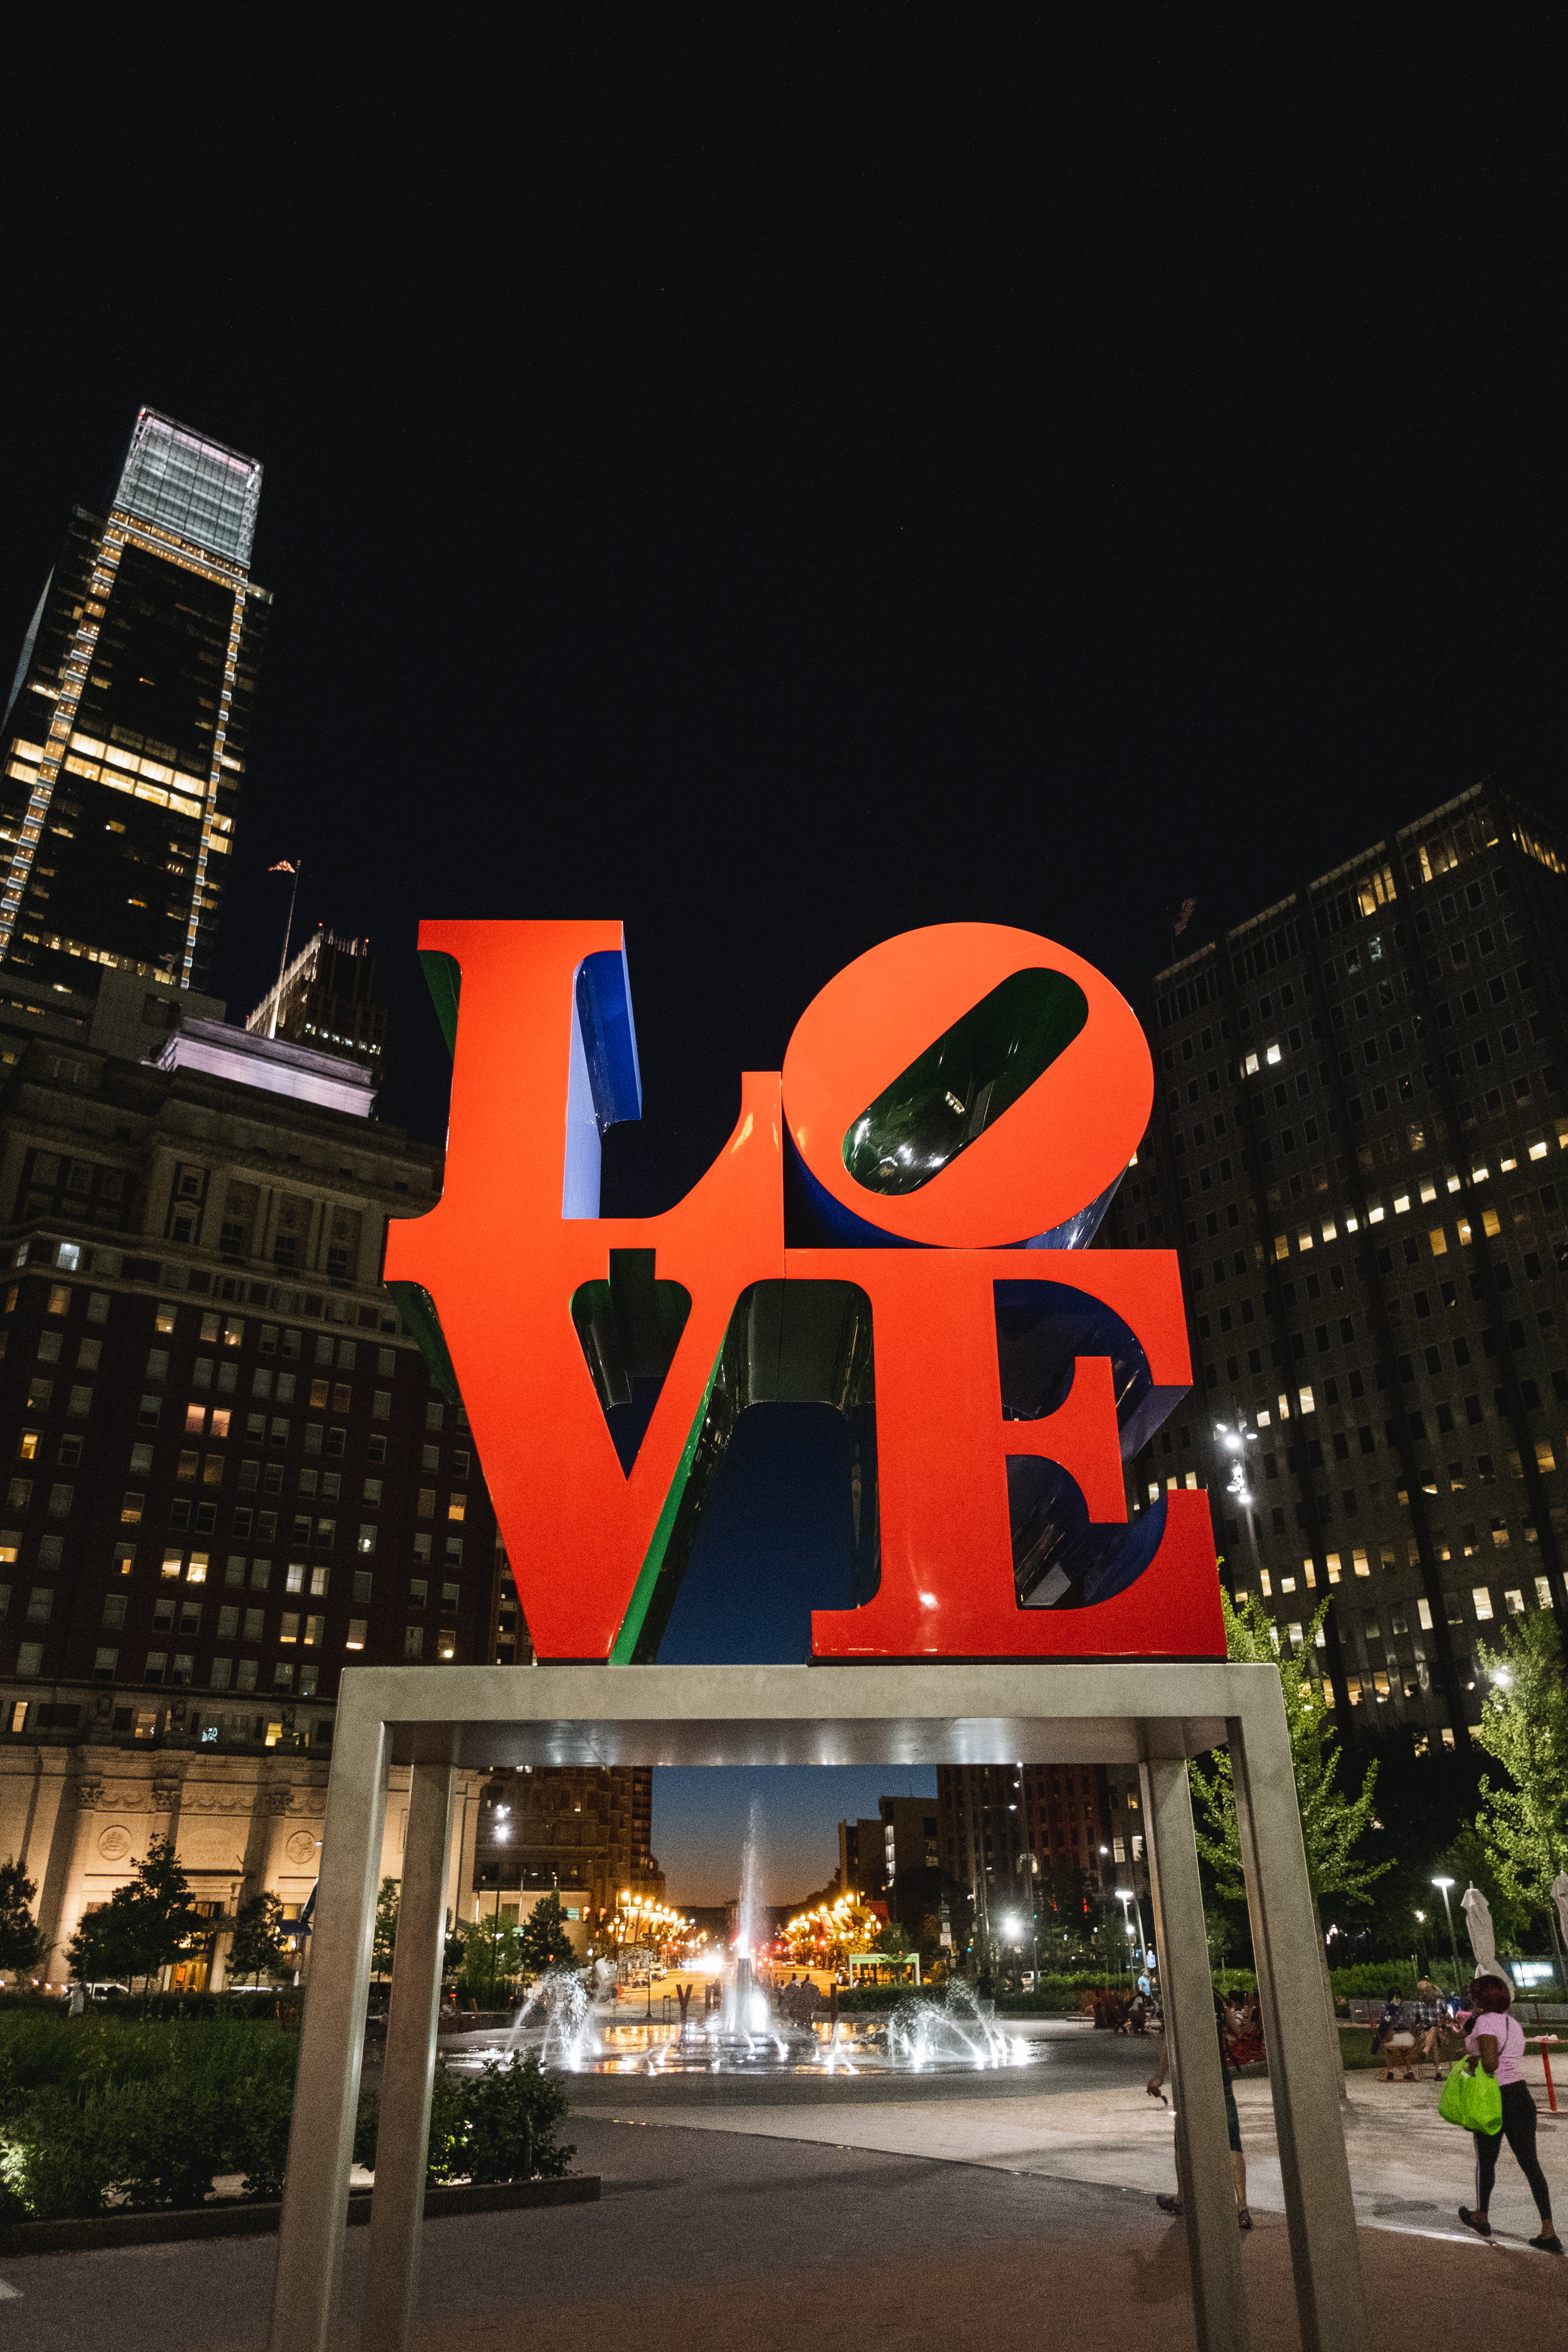 2019_LOVE PARK STATUE_ACTIVITES_THE PHILLY CHECKLIST-7.jpg